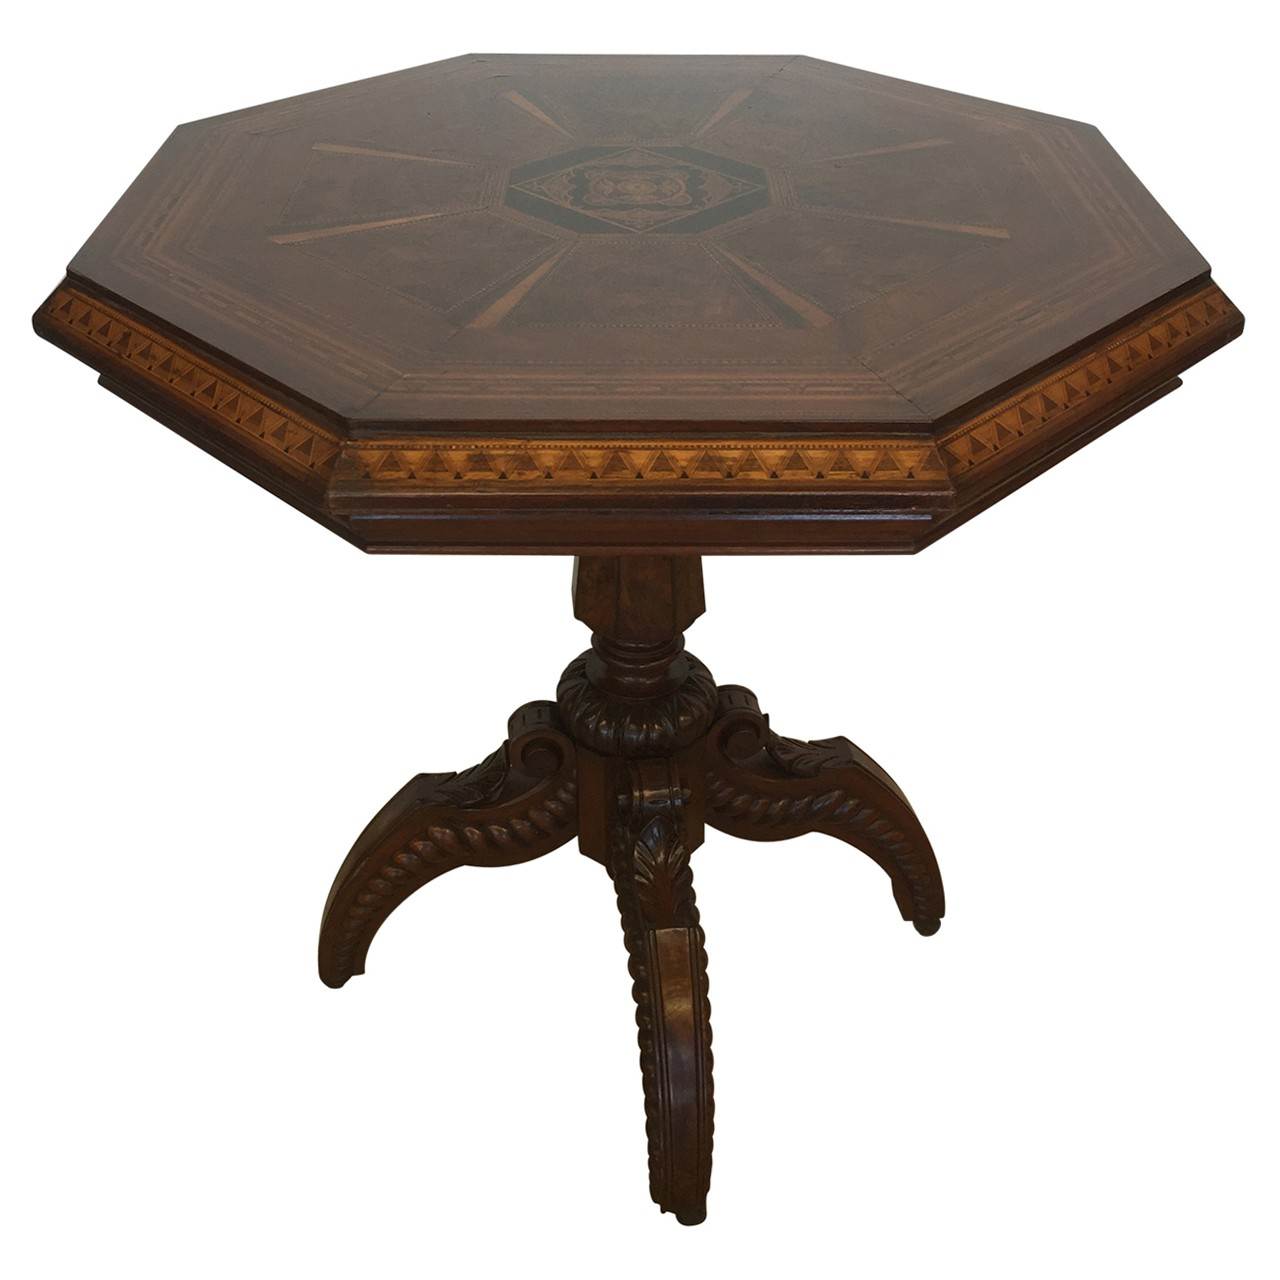 19th century American burl walnut parquetry inlaid pedestal table.